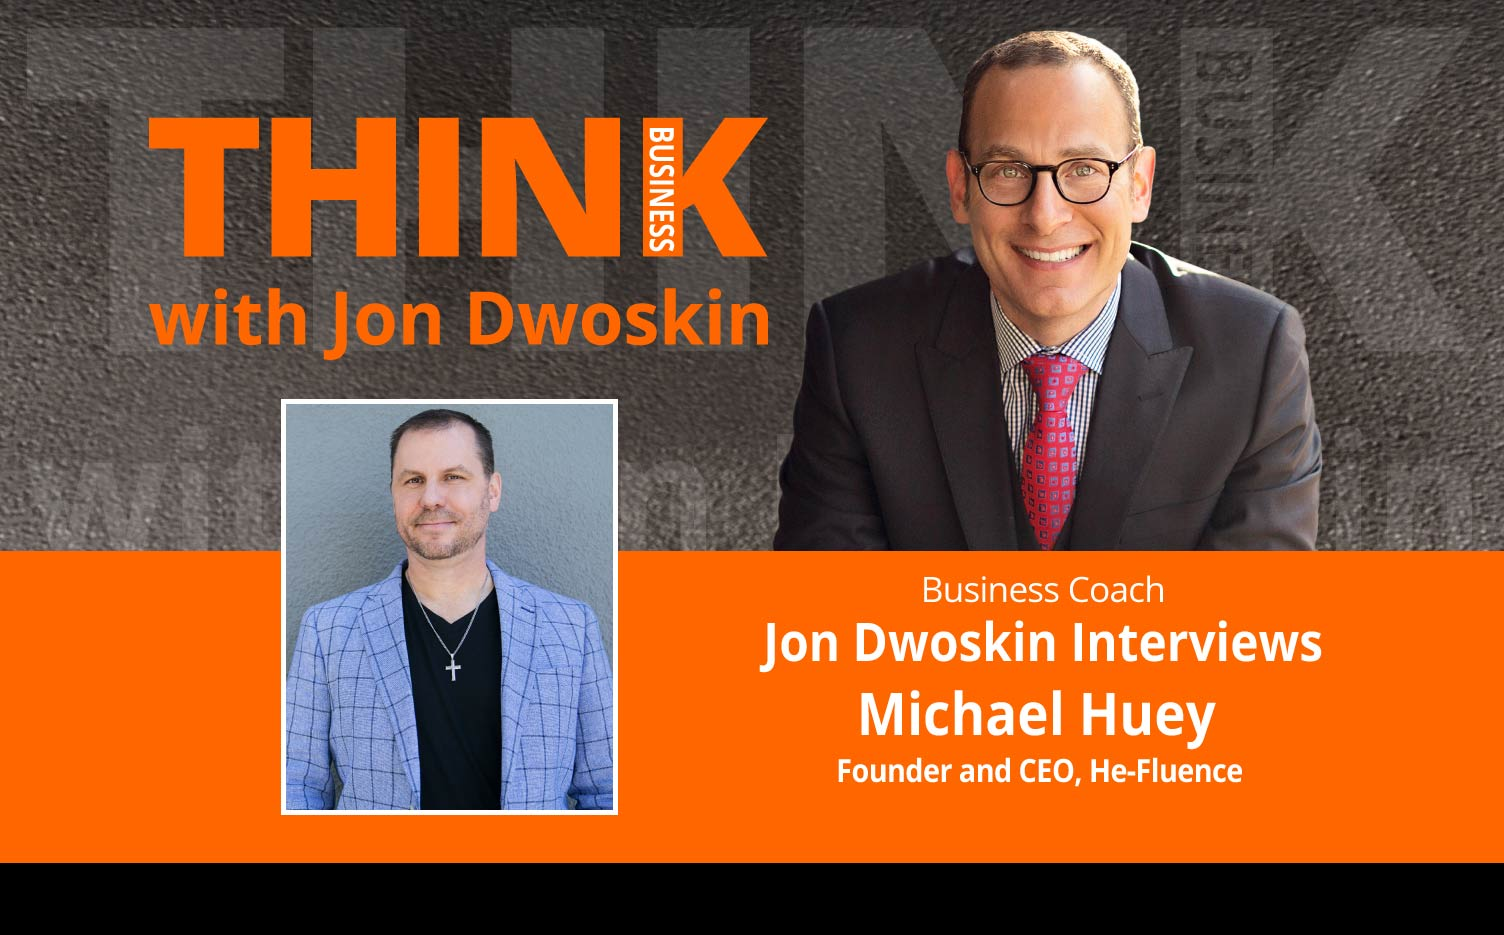 THINK Business Podcast: Jon Dwoskin Interviews Michael Huey, Founder and CEO, He-Fluence